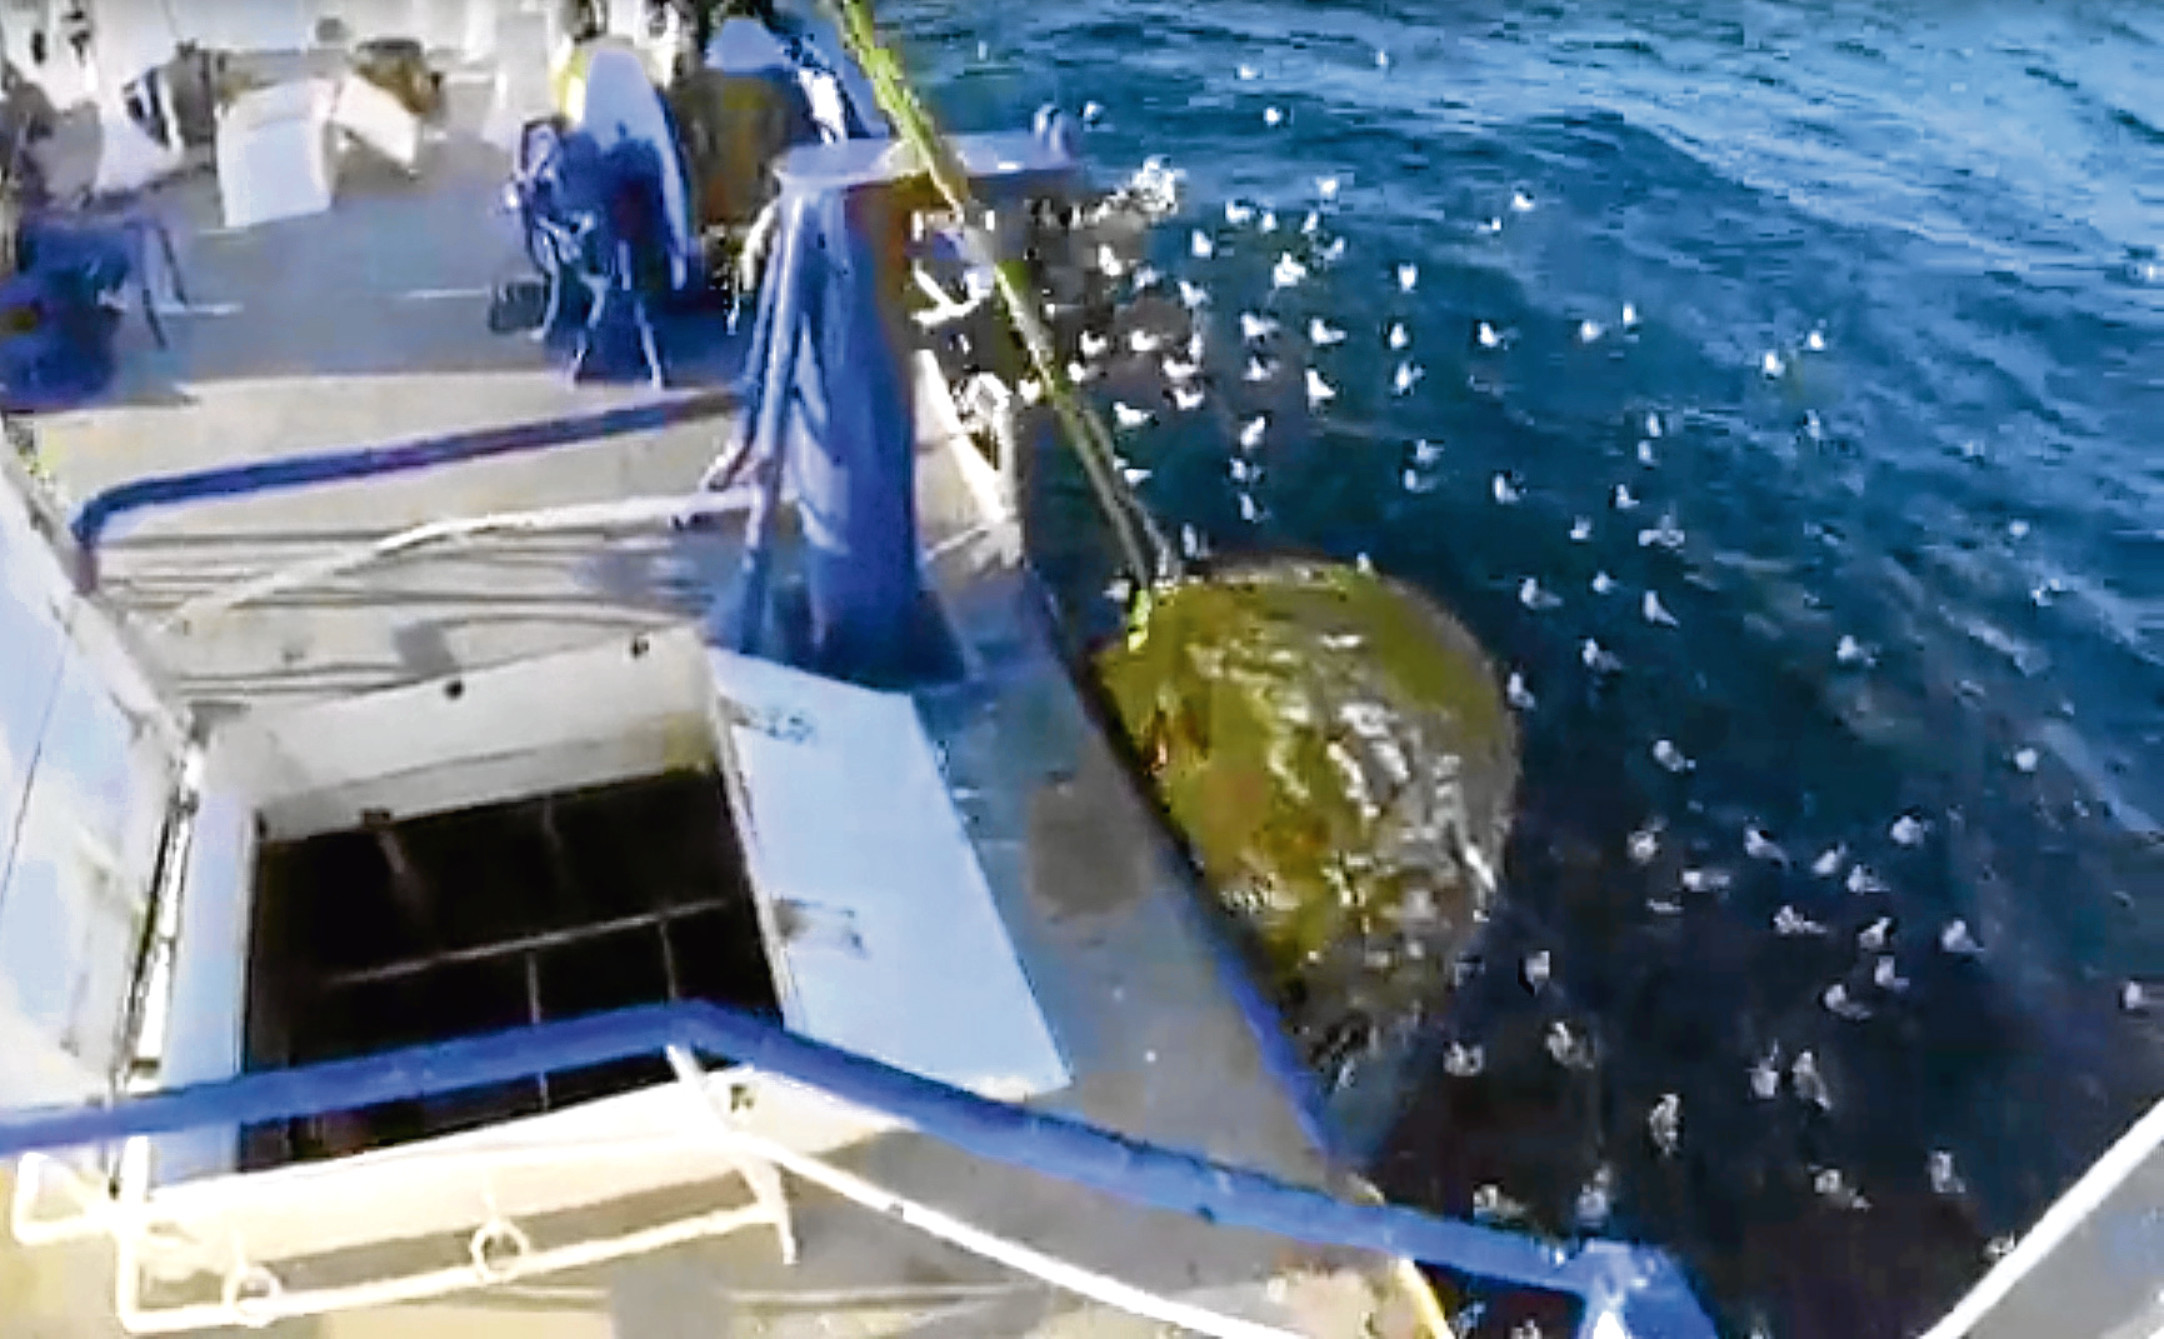 screen grabs from fisherman John Buchan showing his working day onboard his trawler. 